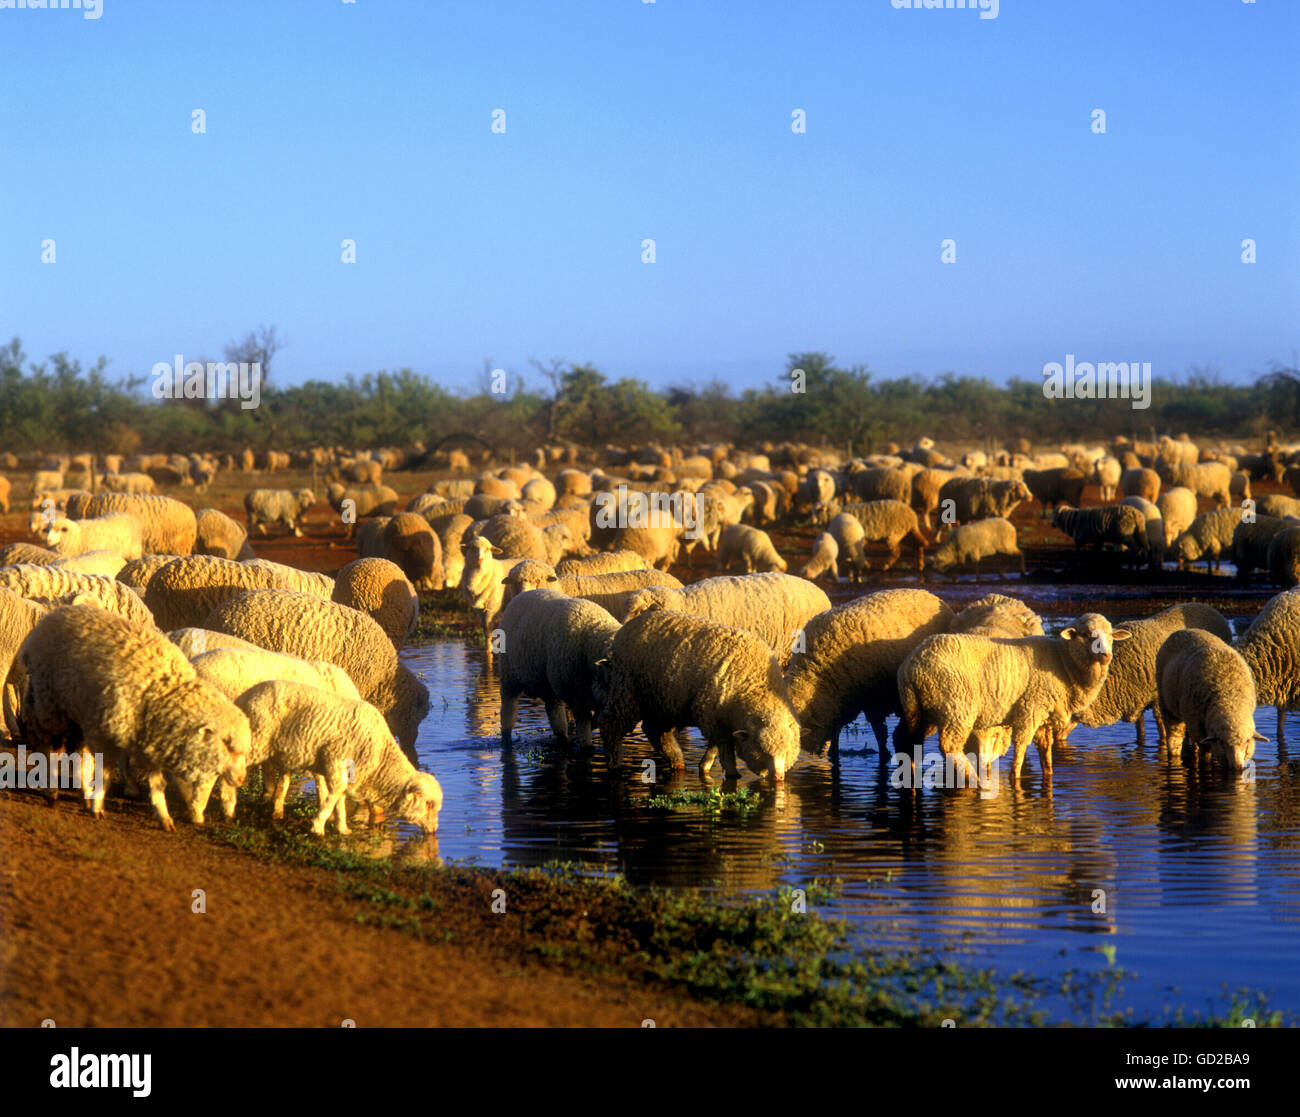 Western Australian Native Plants: Australian Sheep Stock Photos & Australian Sheep Stock